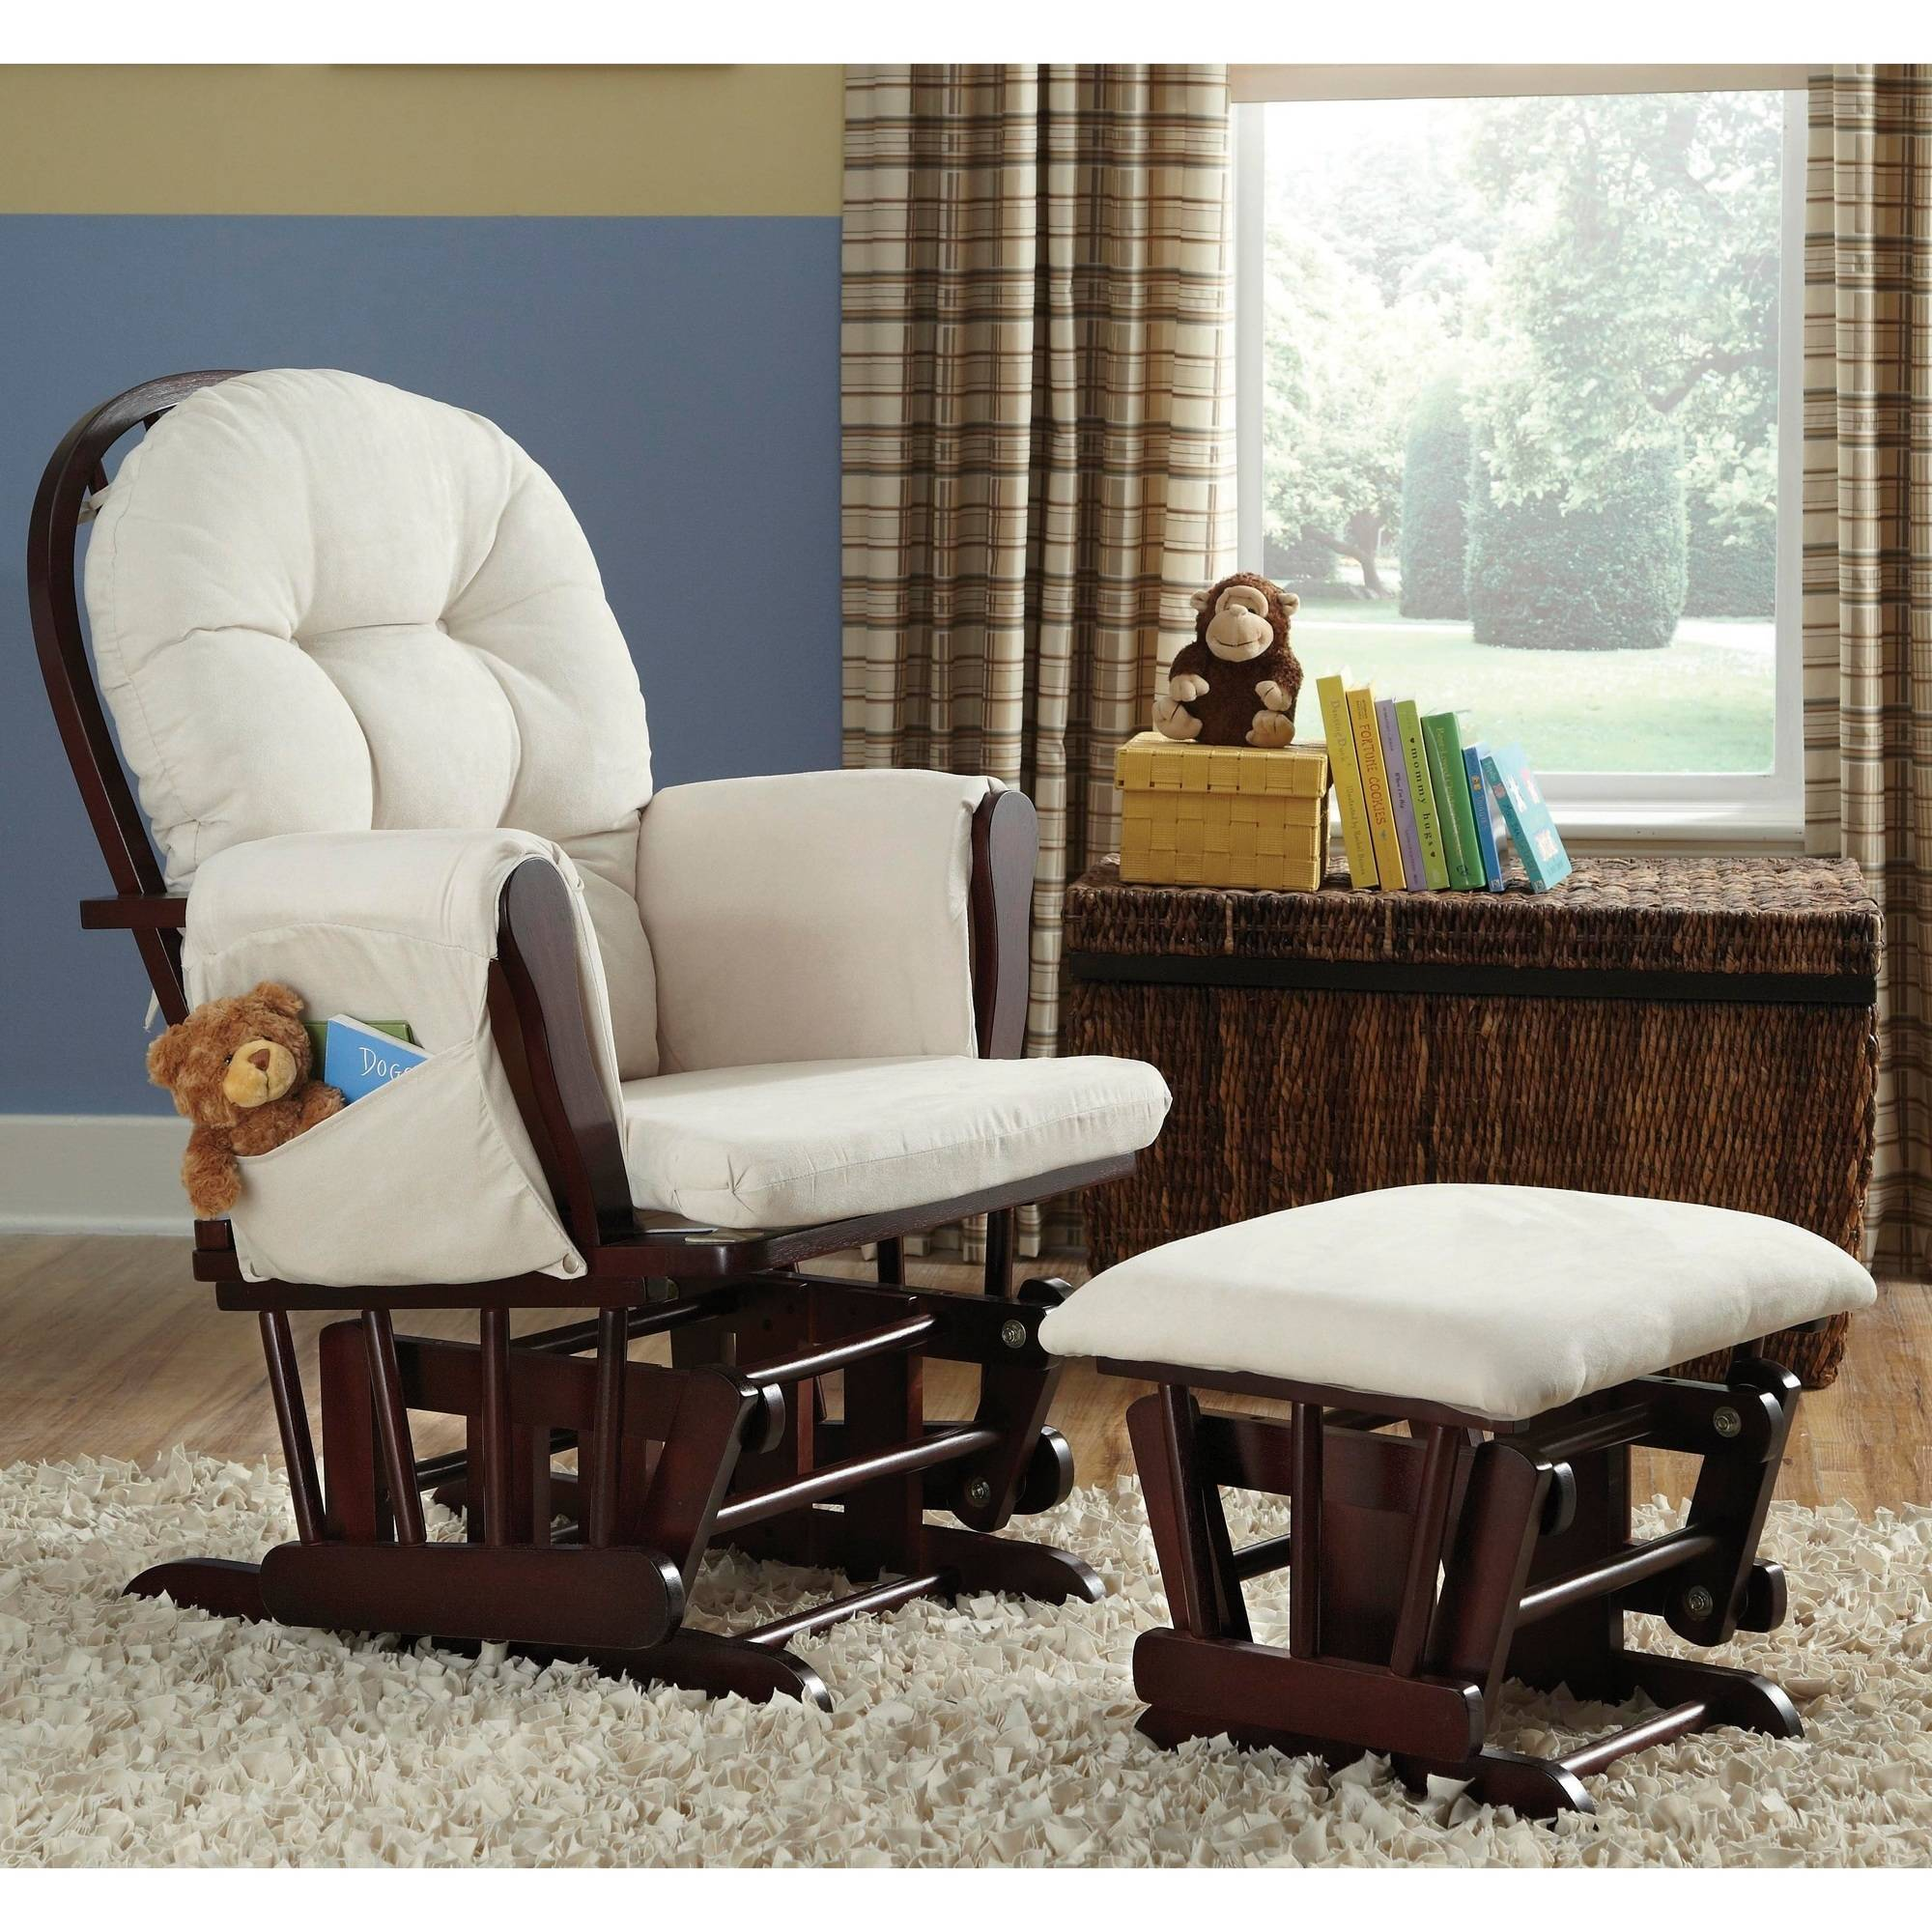 rocking chair ottoman cushions chess table and chairs nursery glider baby set wood